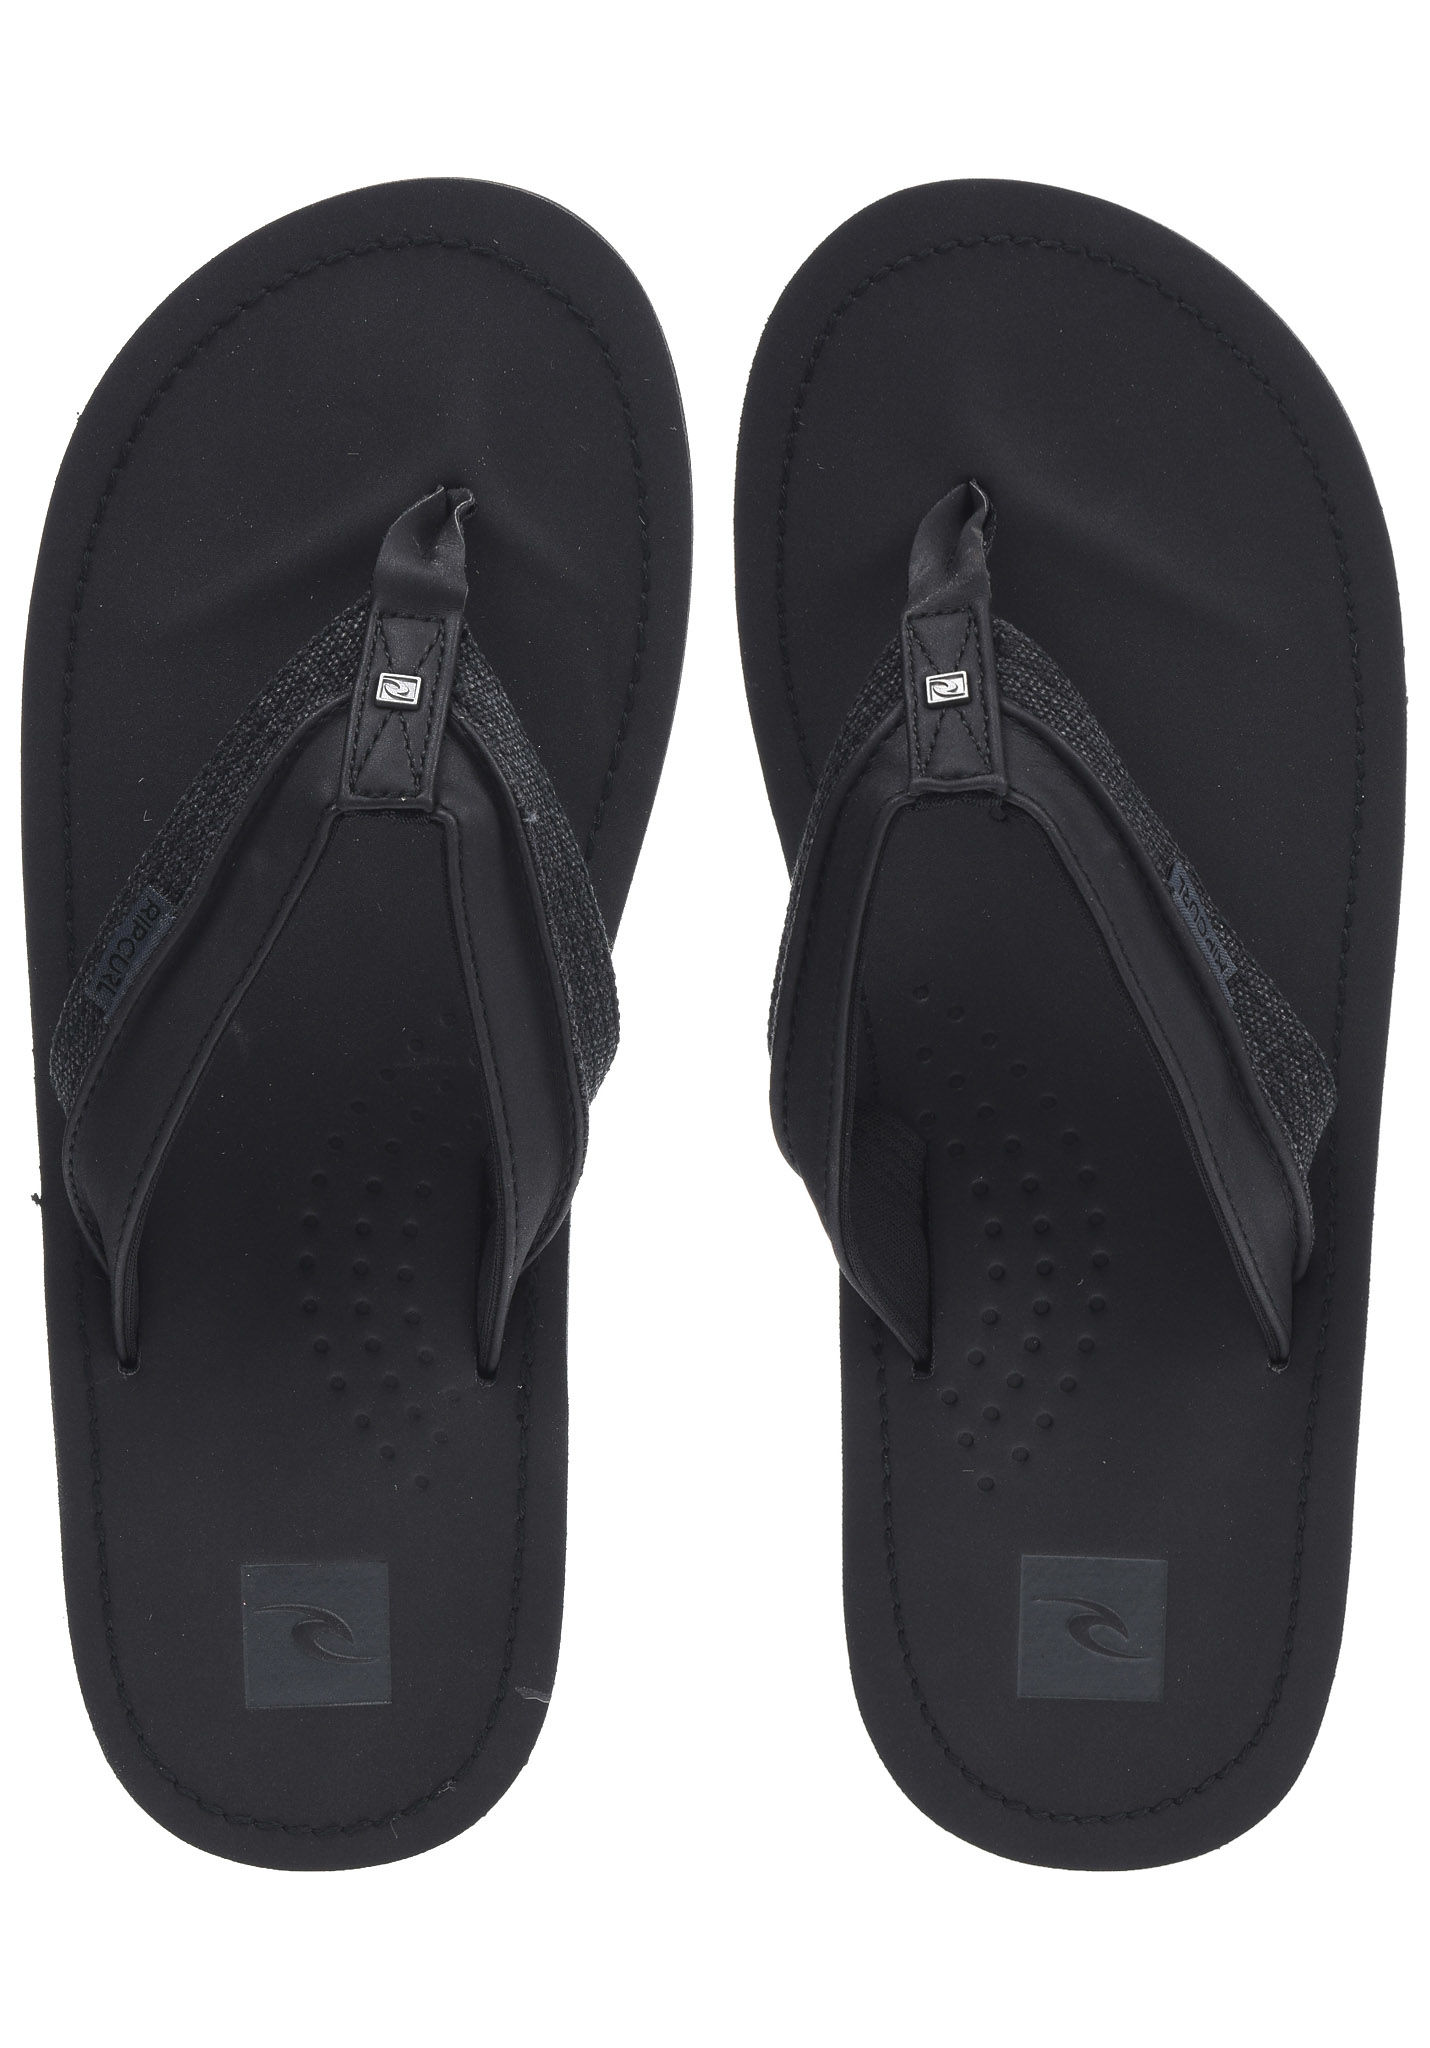 eaaefe7fcd78 Rip Curl OX - Sandals for Men - Black - Planet Sports